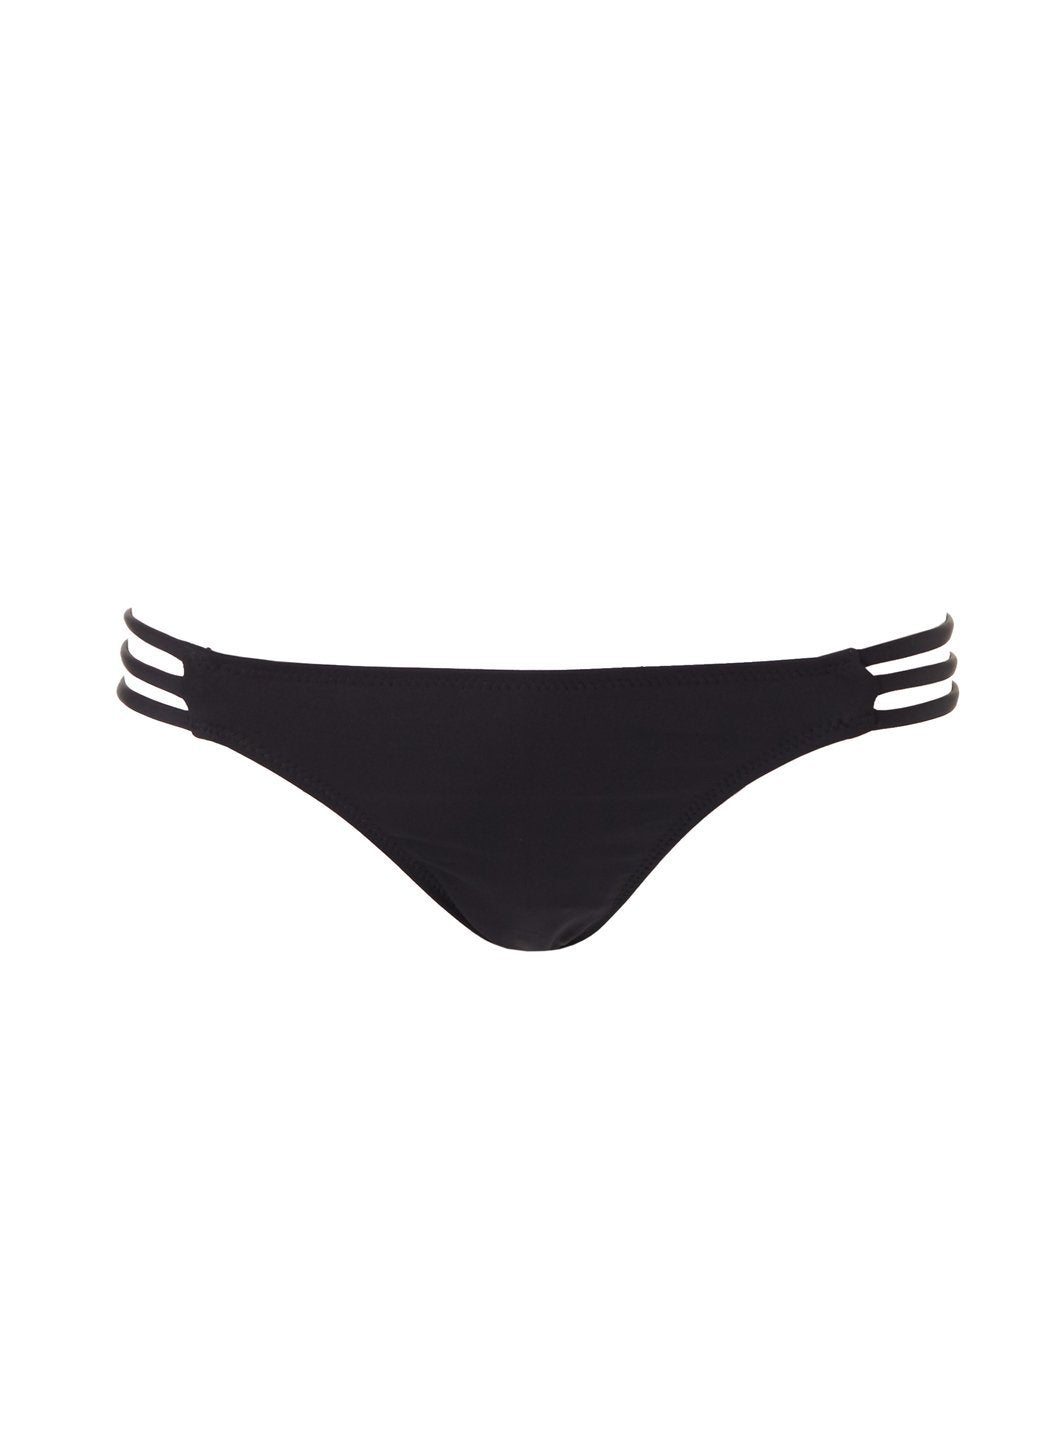 marrakech-black-bikini-bottom - Cut-Out